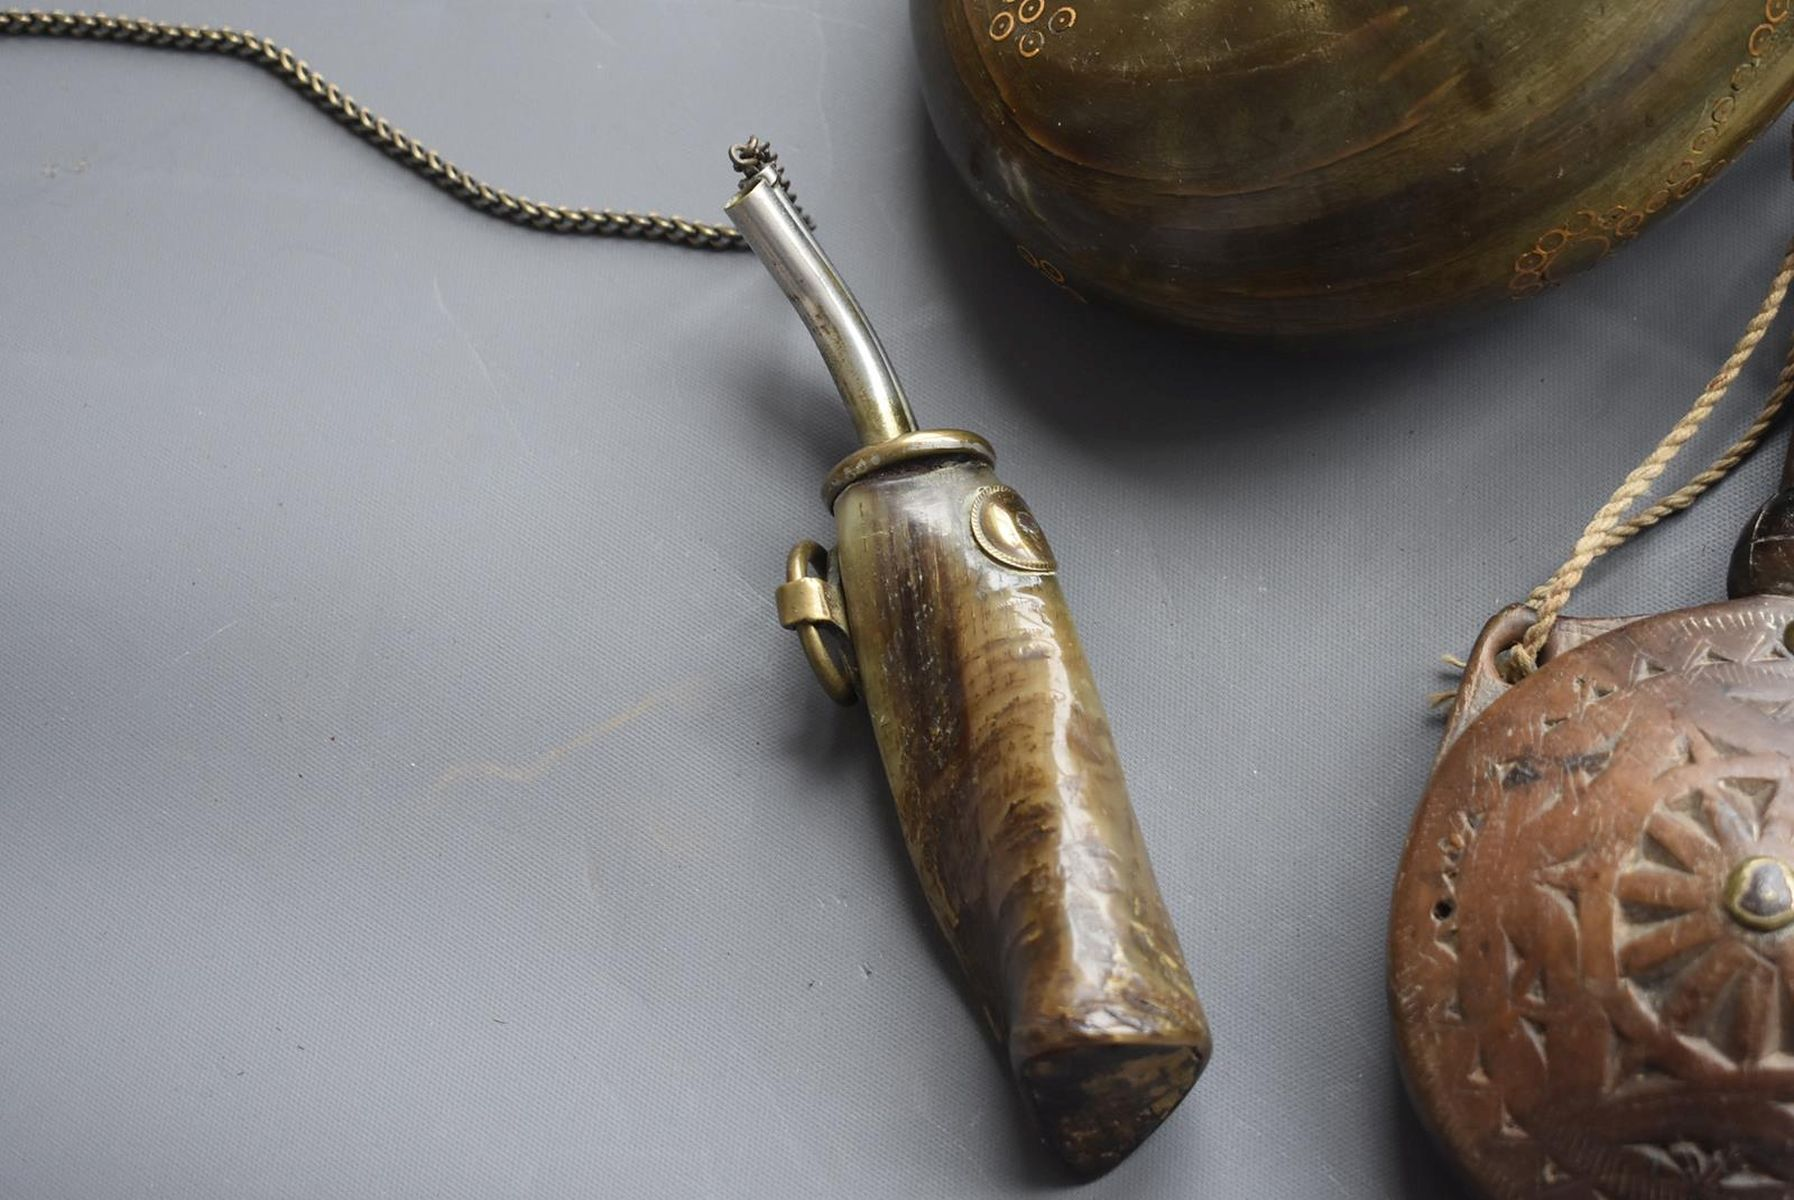 A 19TH CENTURY OTTOMAN POWDER HORN, of characteristic curling form, together with another similar - Image 5 of 8